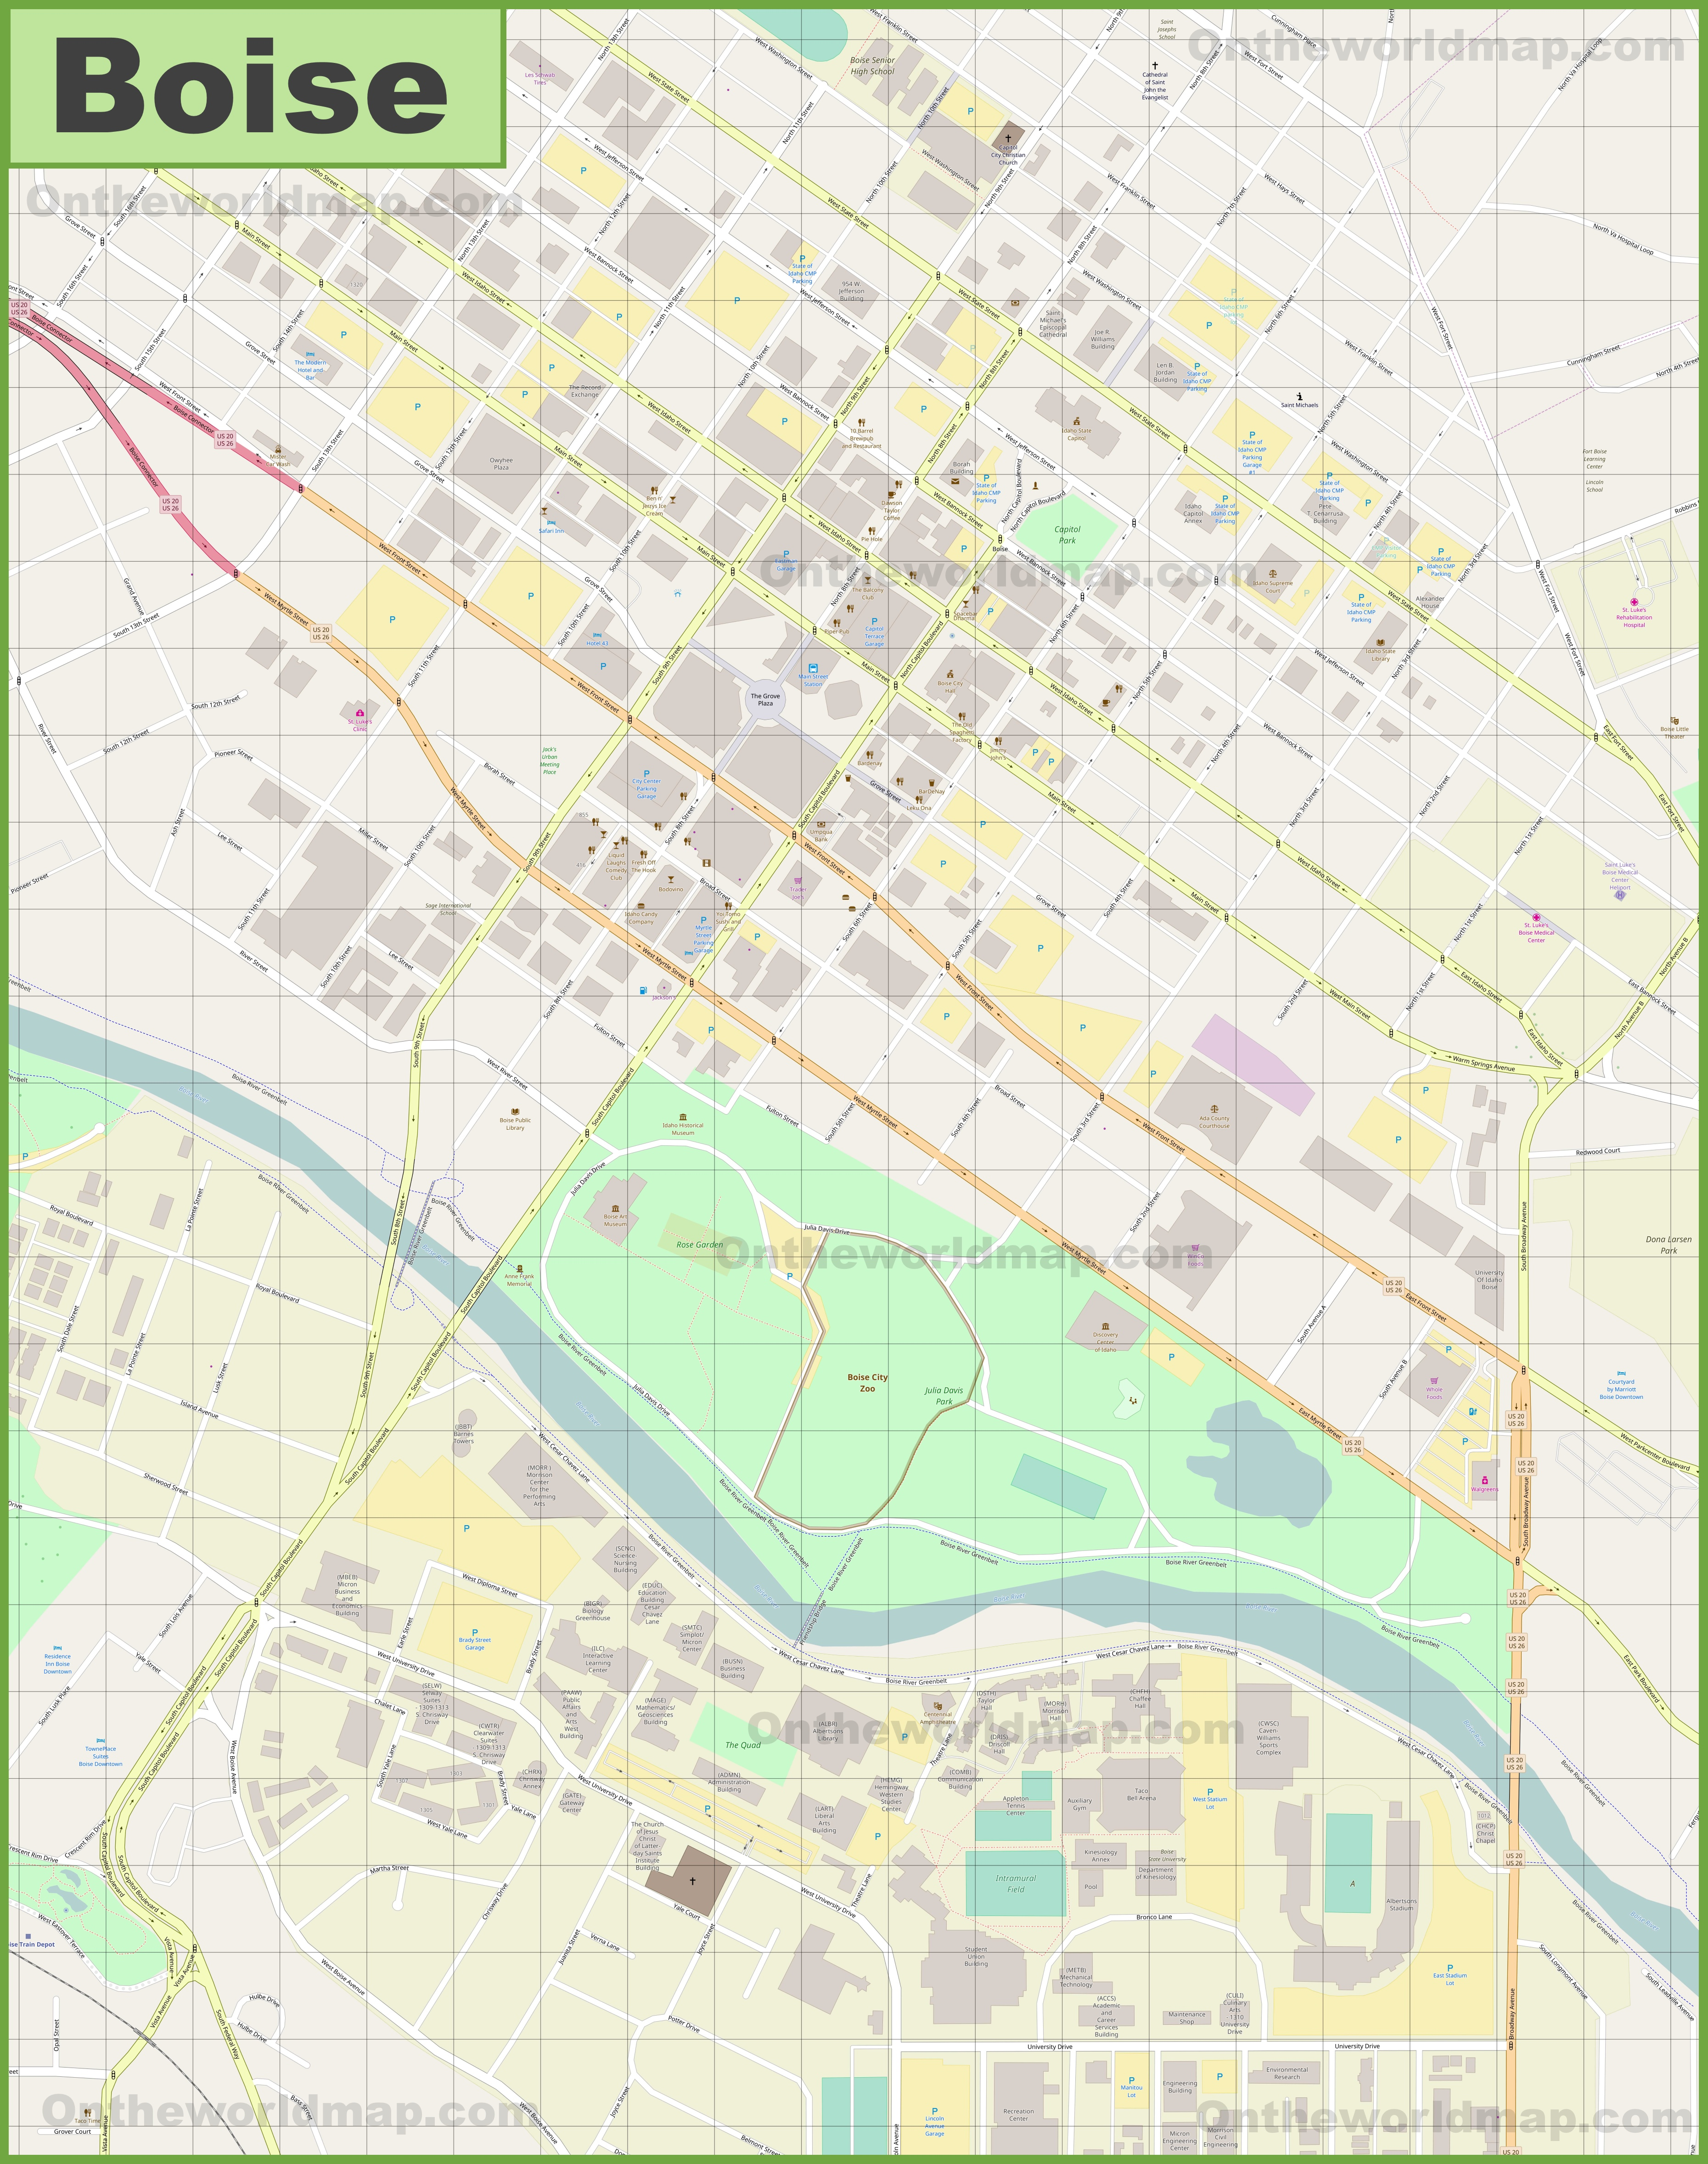 Boise downtown map